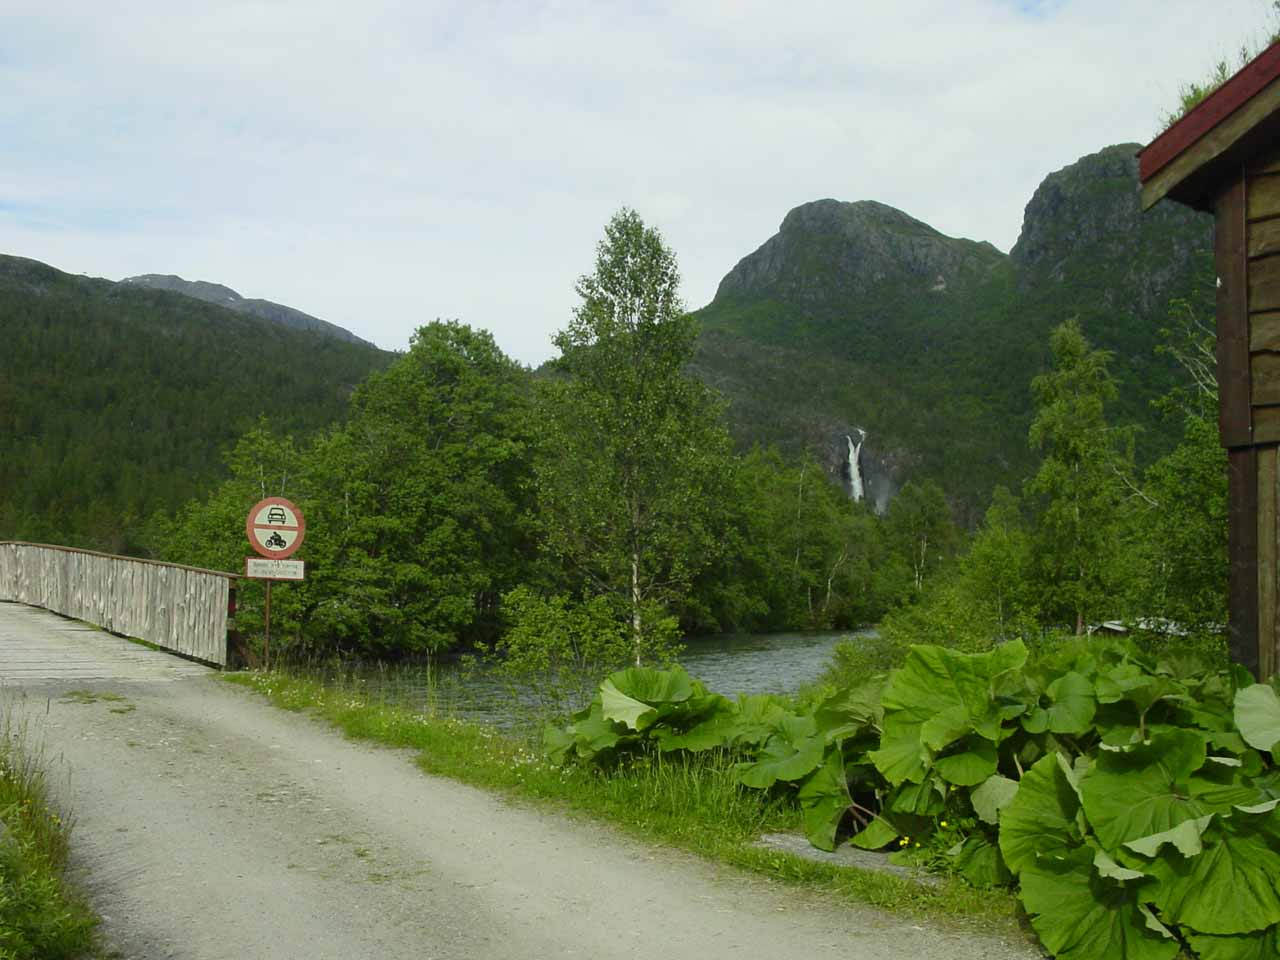 After getting out of the car, I walked towards the bridge over Toåa to continue on the hike to get closer to Nauståfossen